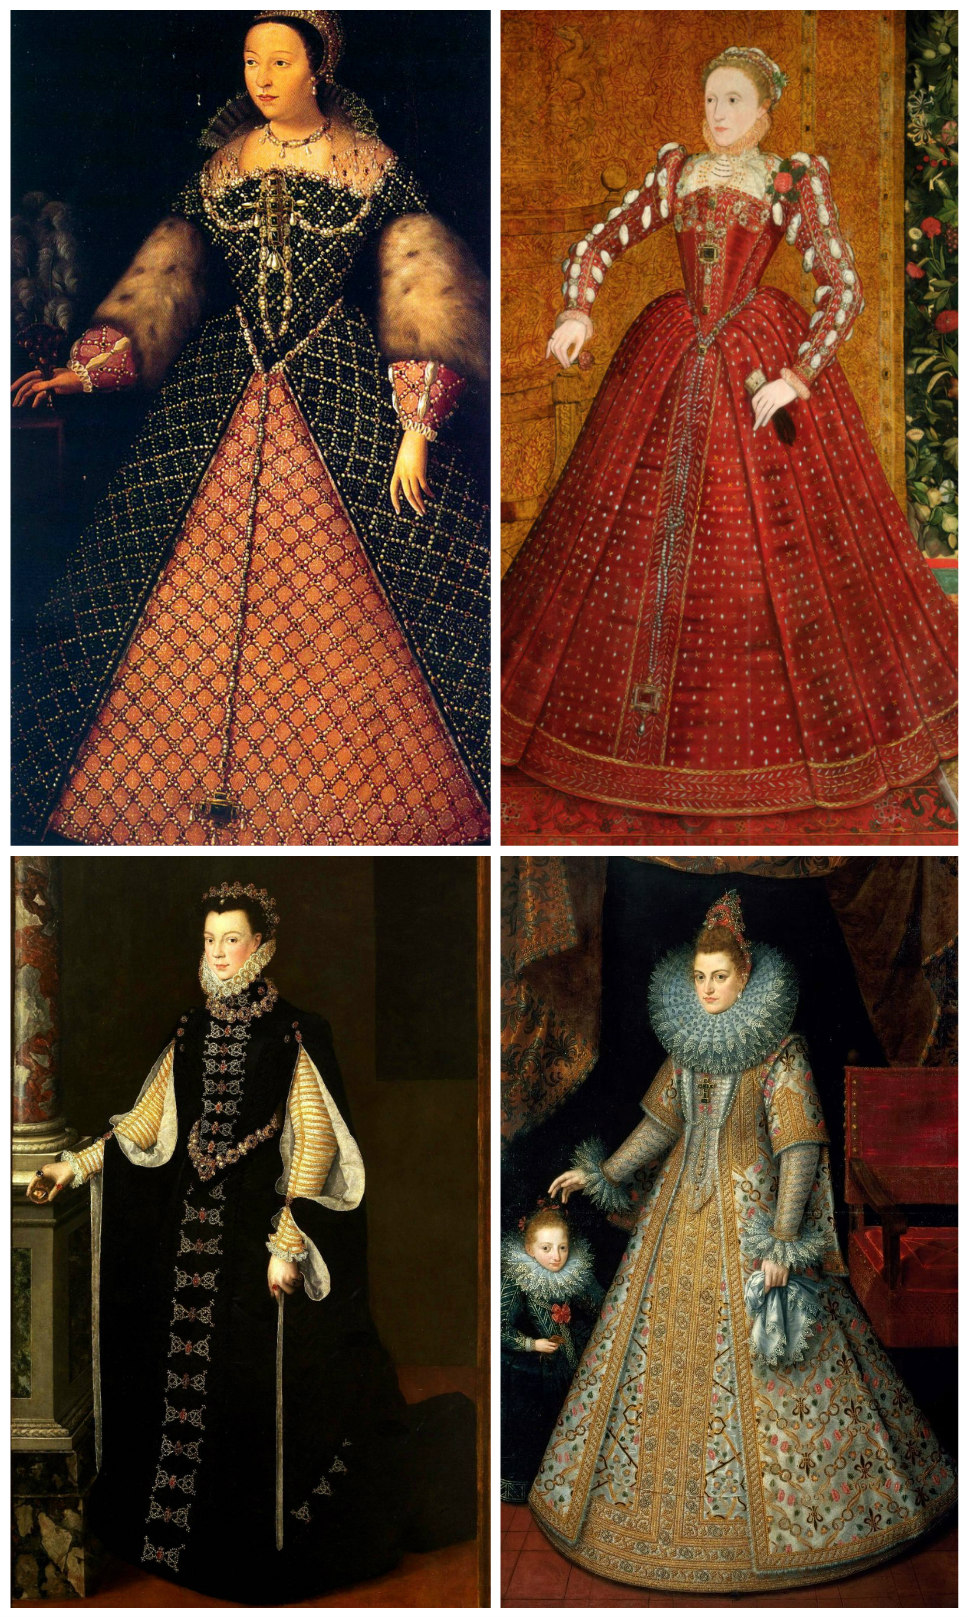 Spanish farthingale. Clockwise from top left: Catherin de Medici, c. 1555; Queen Elizabeth I of England, c. 1563; Elizabeth of Valois, Queen of Spain, 1565; Isabella of the Spanish Netherlands, 1599